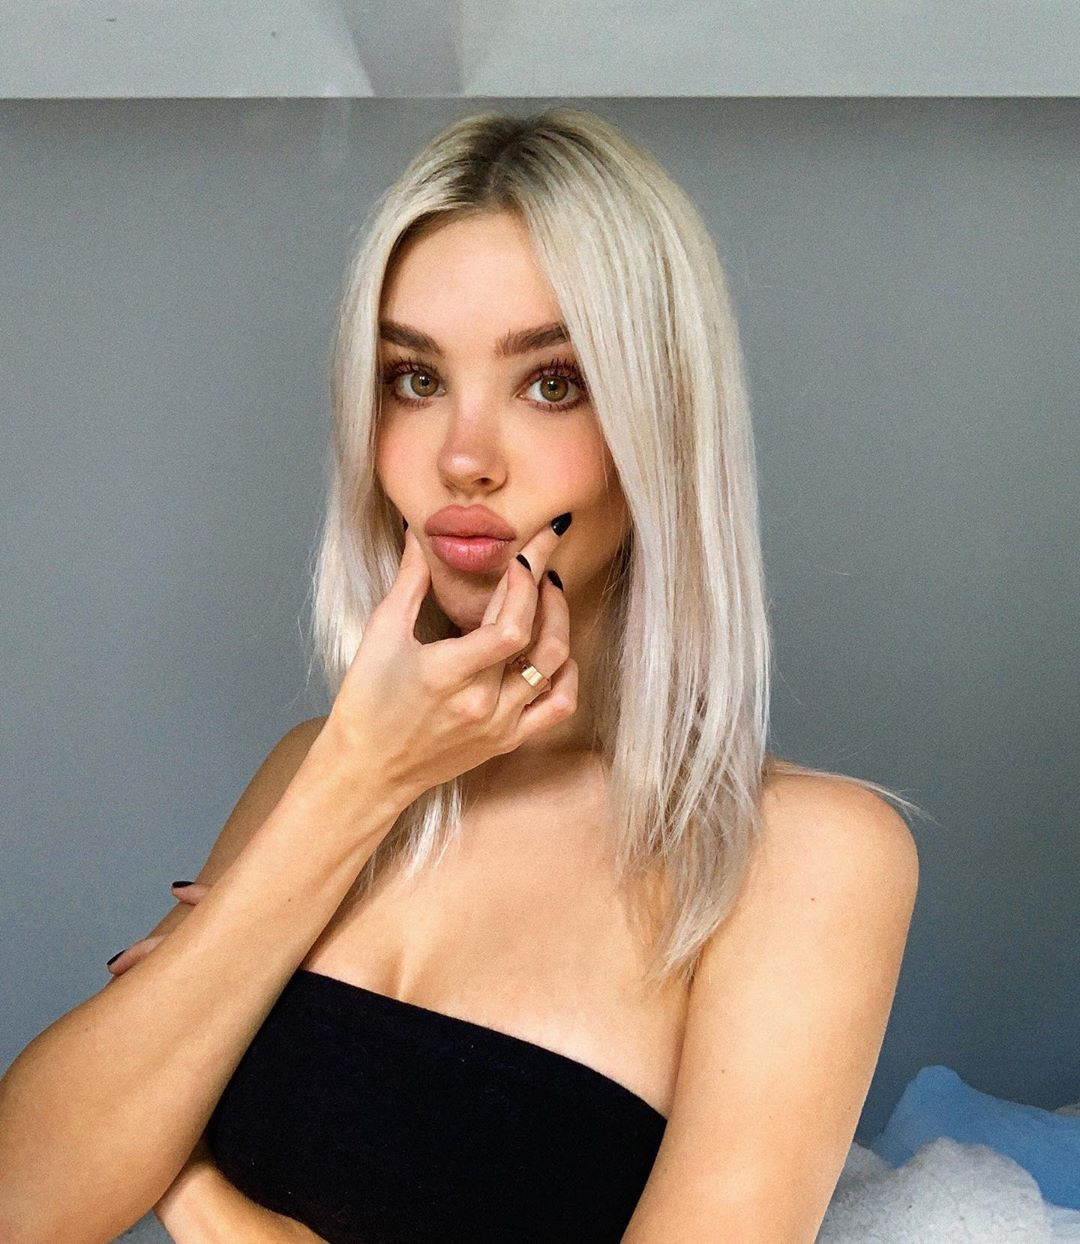 Maria Domark blond hairs pic, Cute Girls Face Instagram, Lips Smile